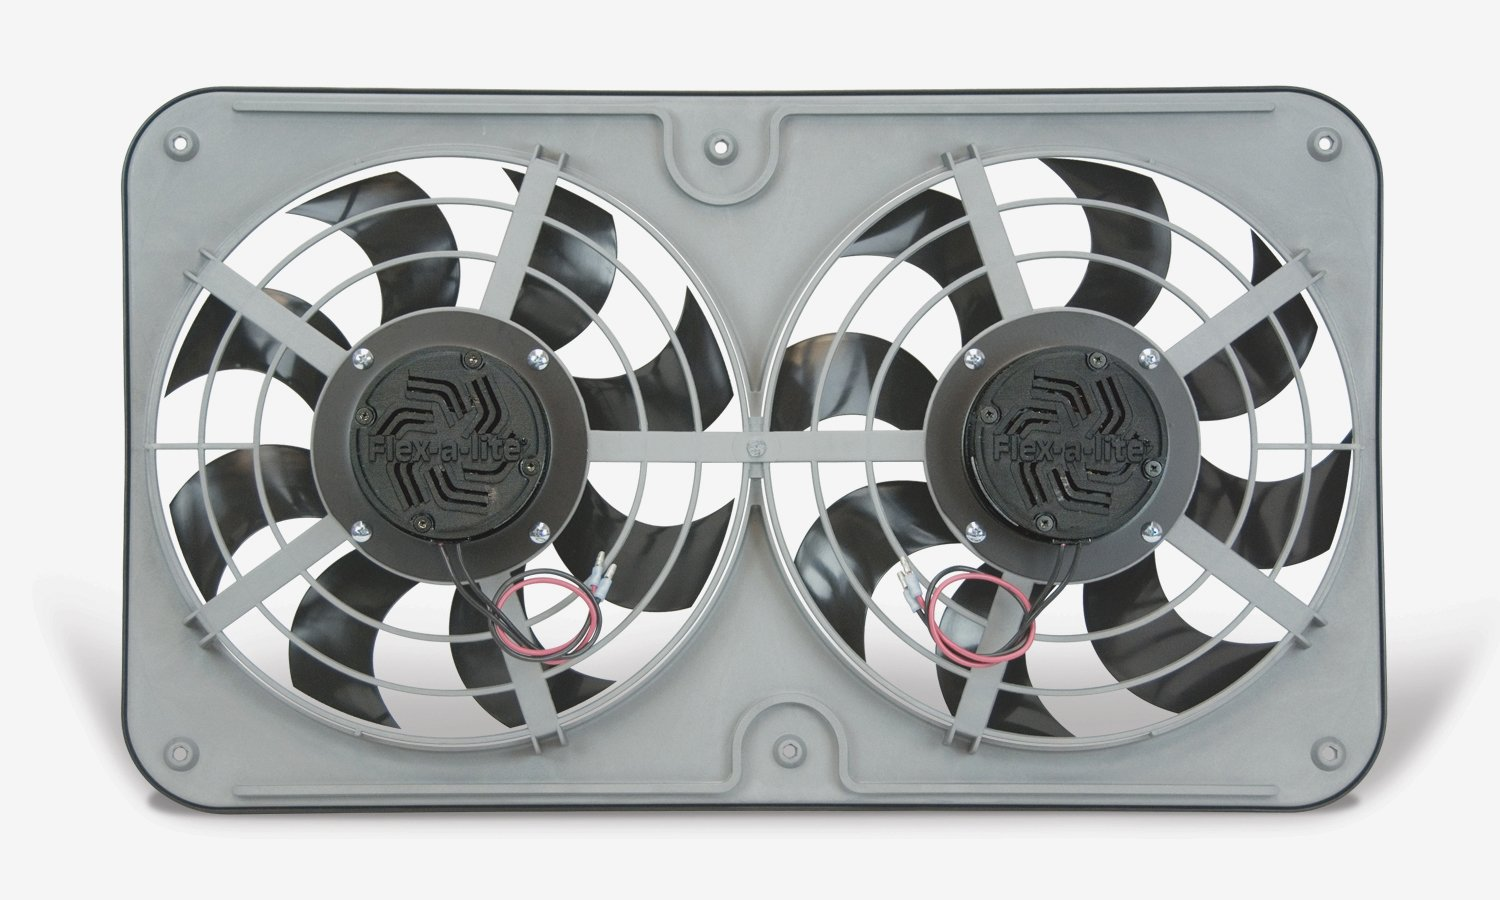 "Flex-a-lite 480 X-treme S-blade 12"" Dual Reversible Fan with Controls"